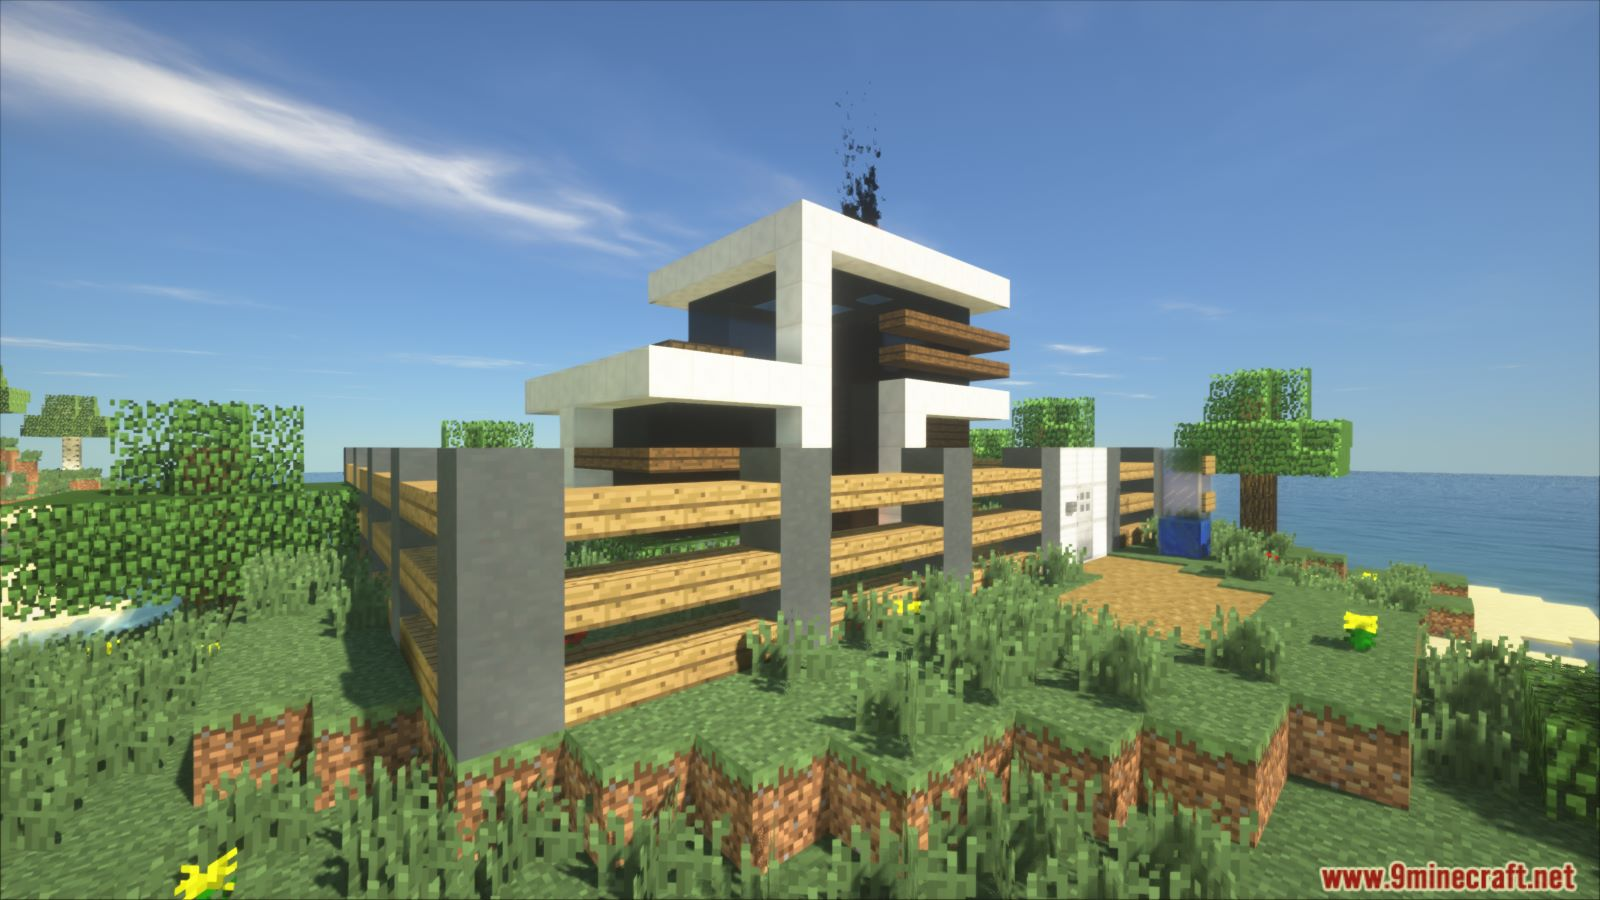 Animated Self Building Redstone House Map 112.1120.12 for Minecraft